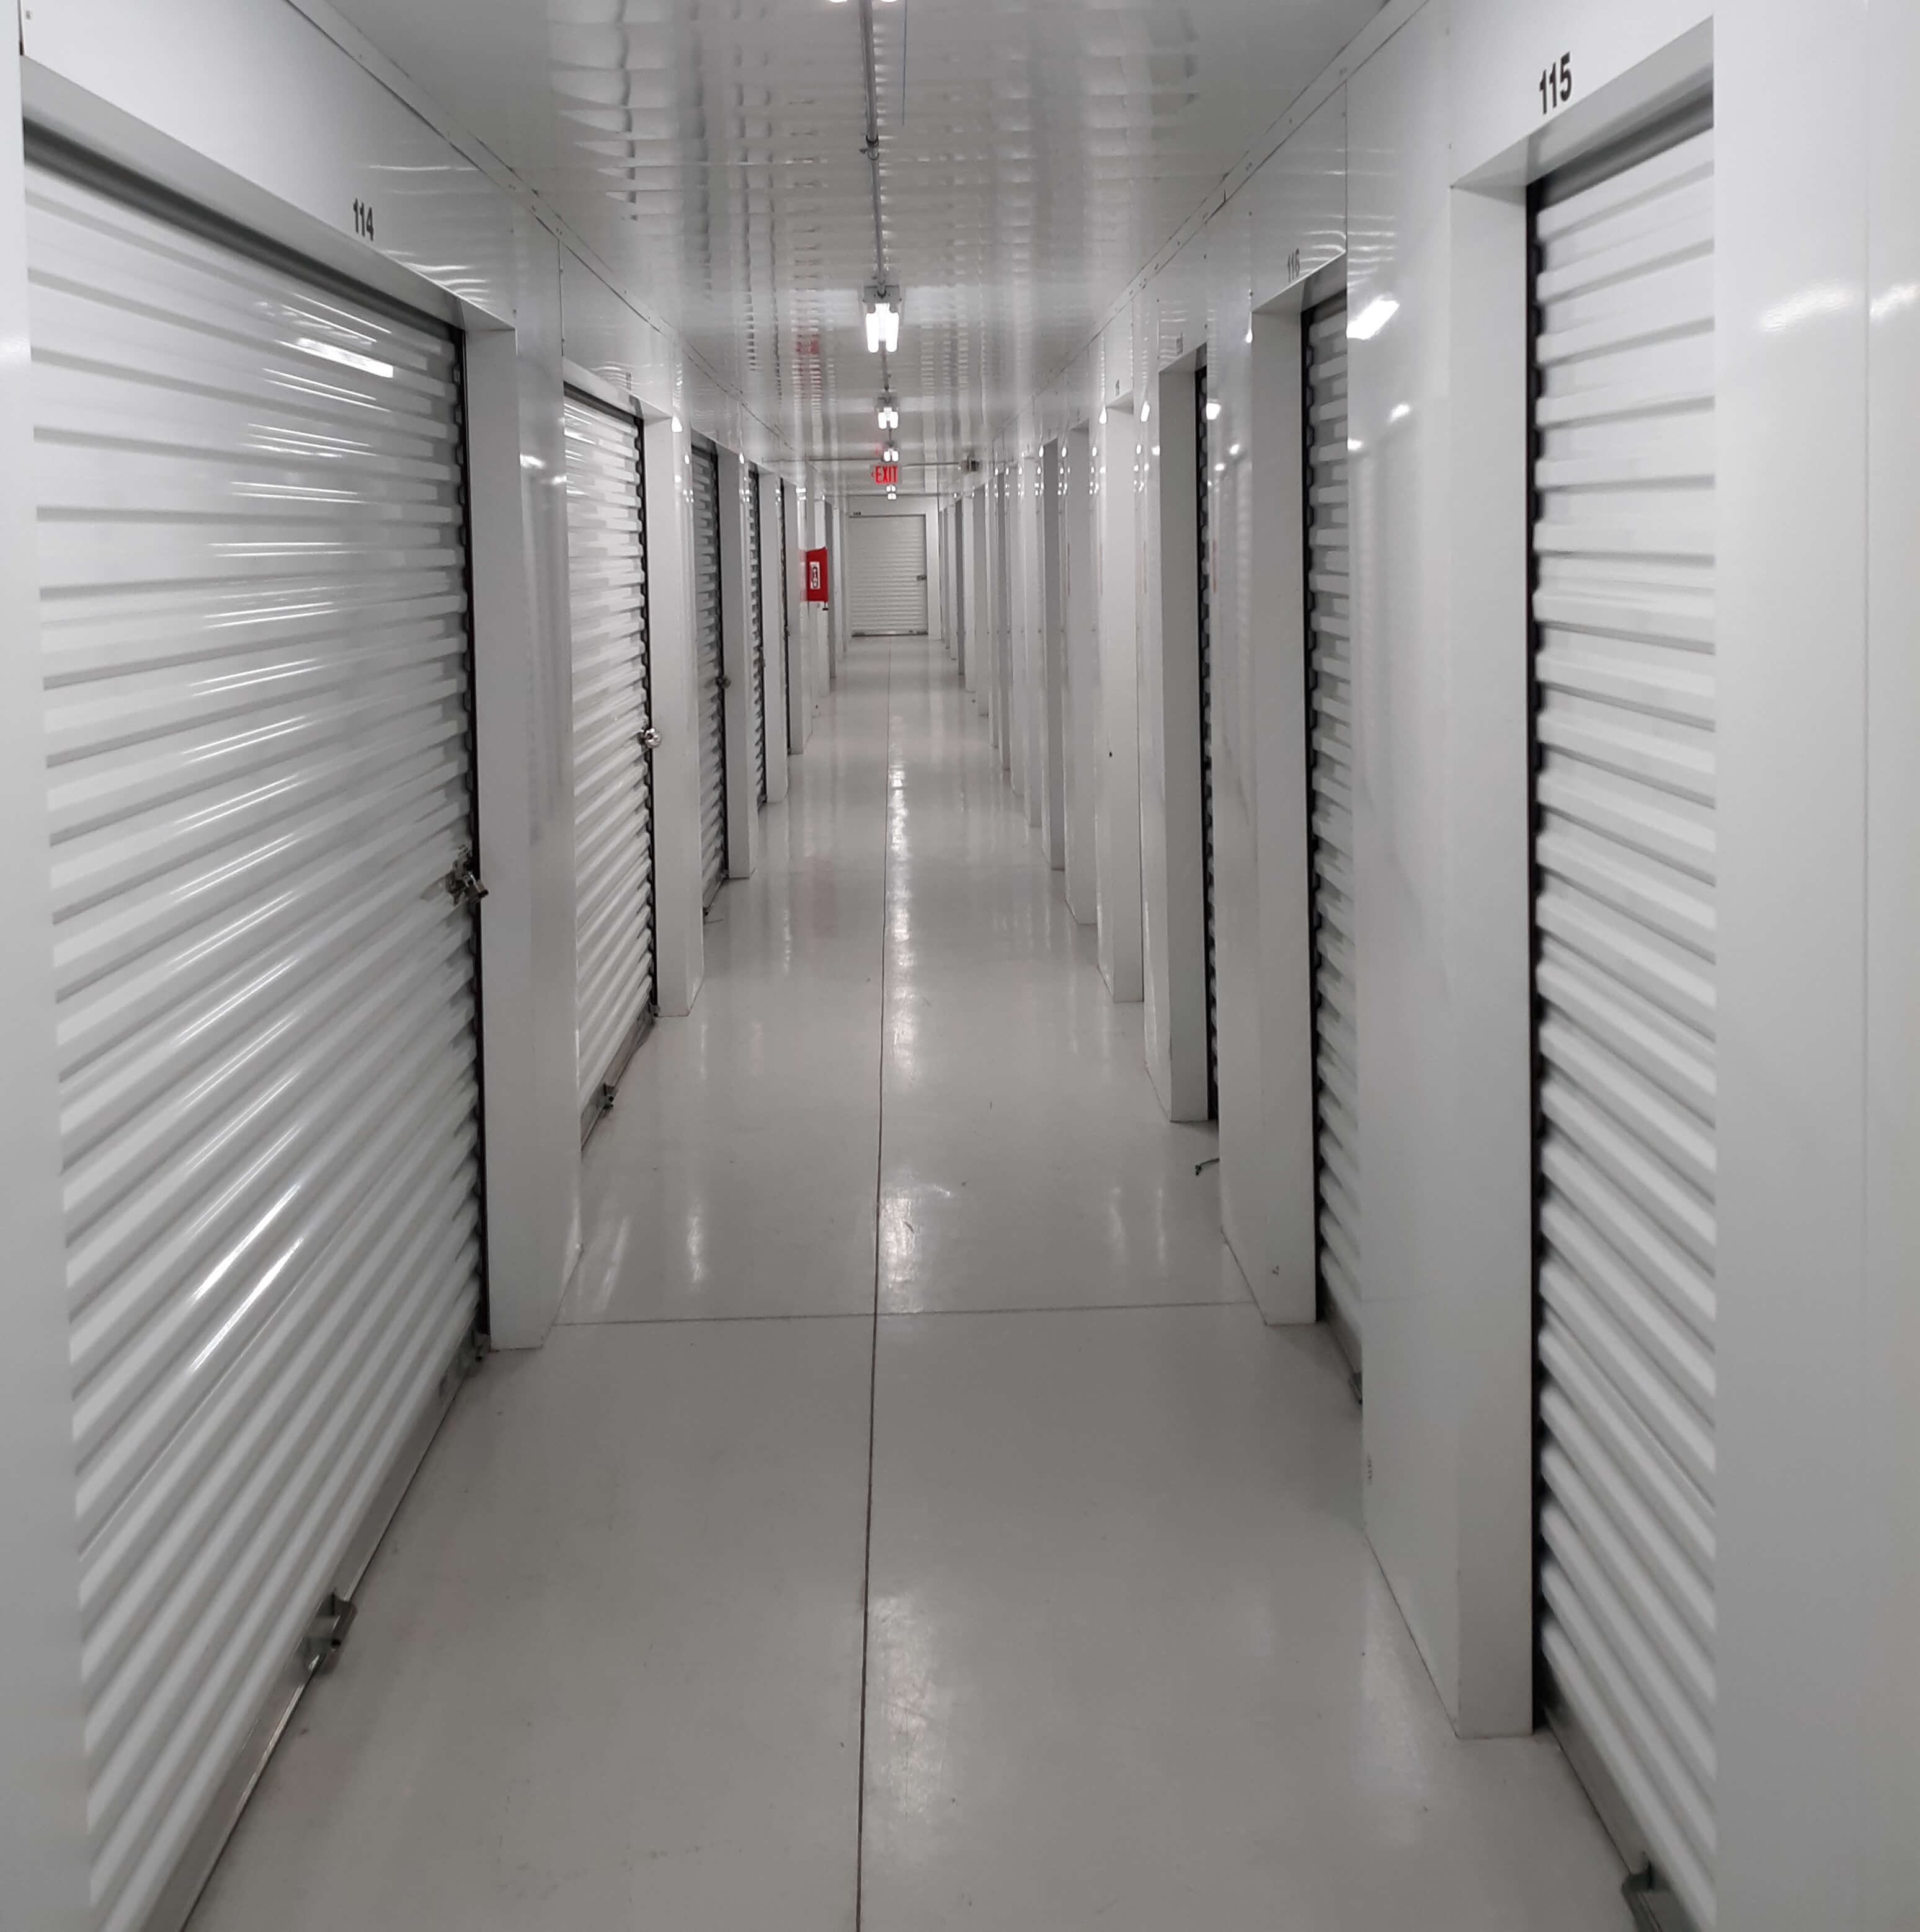 Inside view of storage units at Smart Stop Self Storage facility at 1671 Northpark Drive in Kingwood Texas